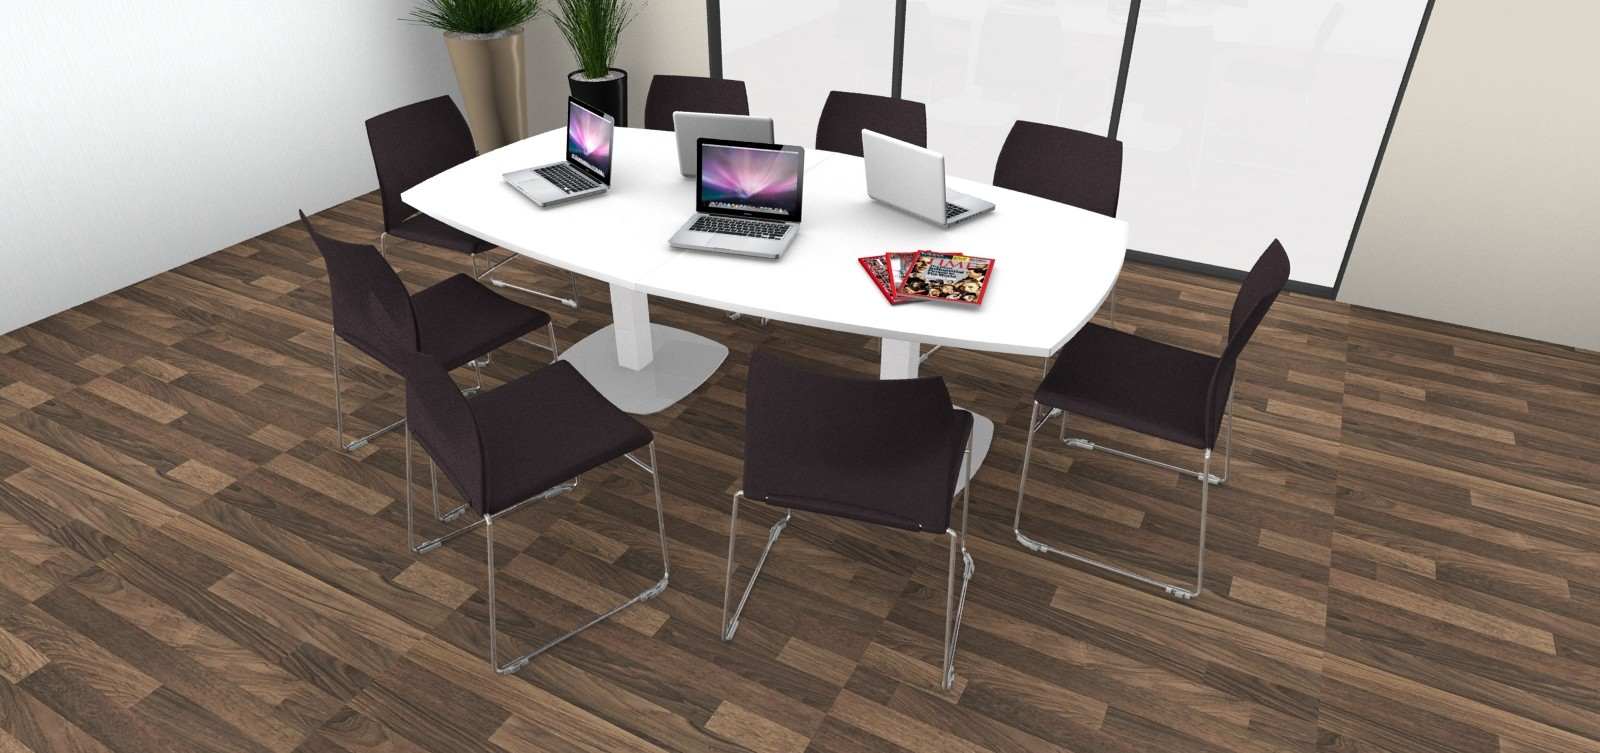 table de salle manger rectangulaire 4 dimensions de 6 8 personnes blanc autres dimension table. Black Bedroom Furniture Sets. Home Design Ideas